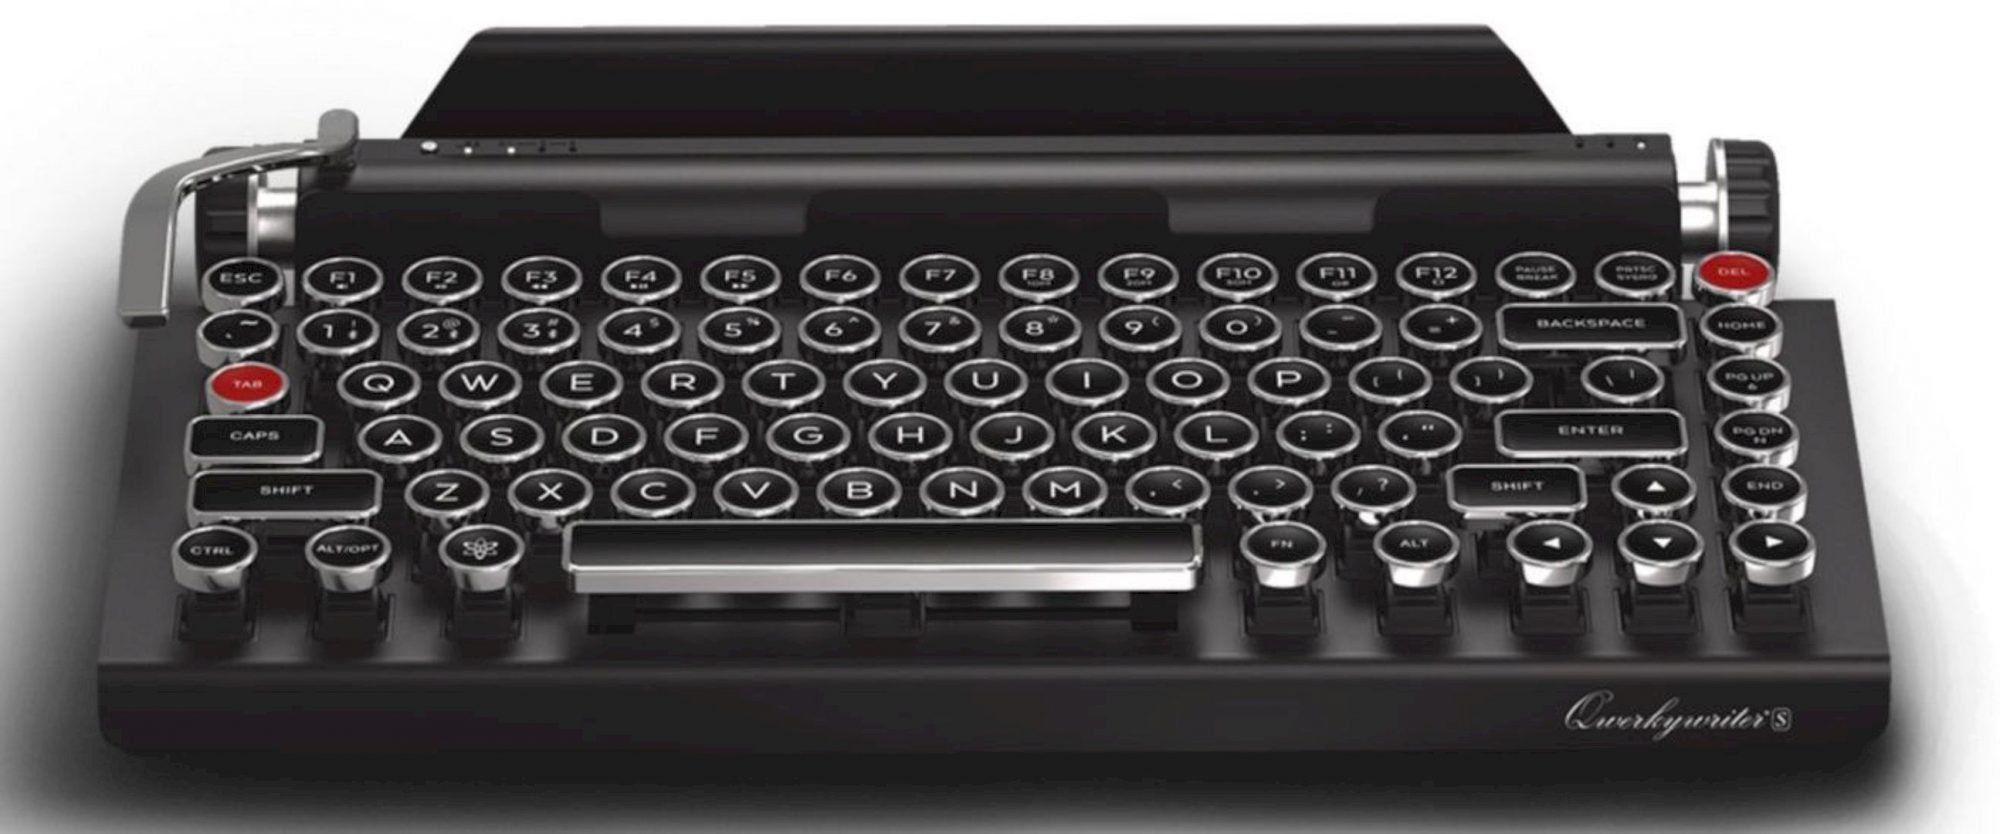 Qwerkywriter S®: The New Typewriter Inspired by Mechanical Keyboard